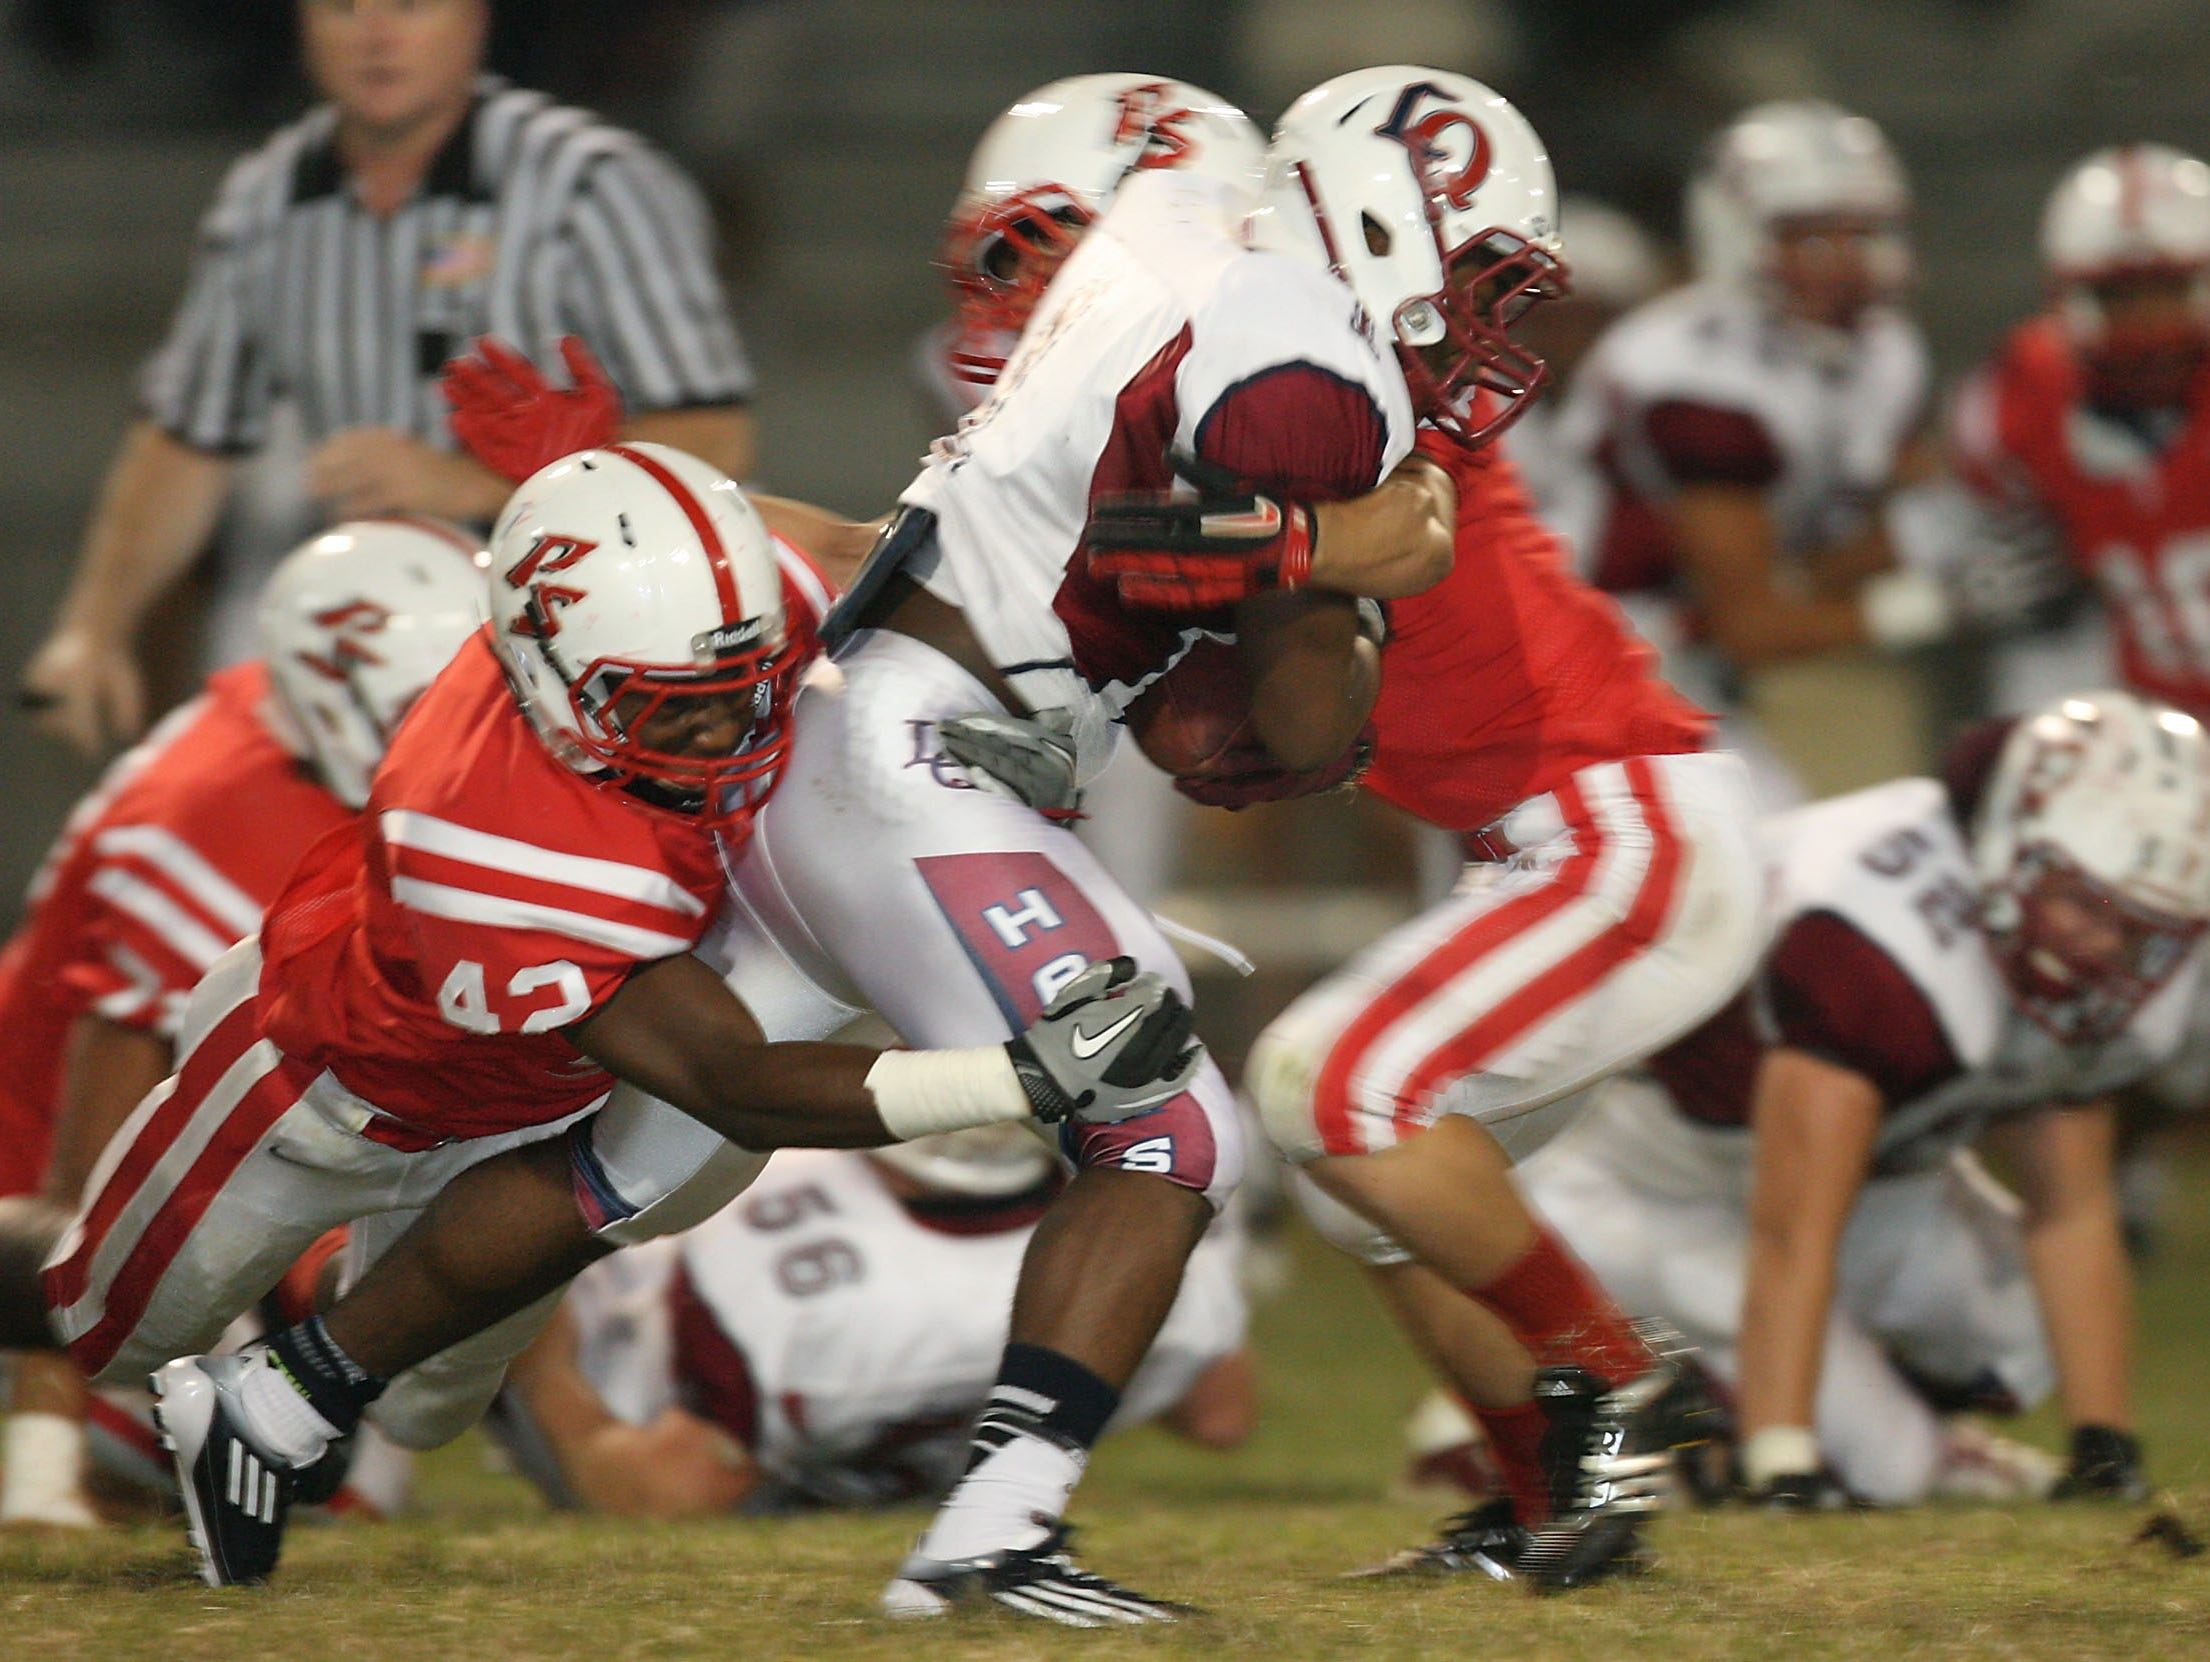 Rodney Butler, 42, makes a tackle on La Quinta running back Kenyon Williams during their game in Butler's senior season at Palm Springs. Butler is now looking to pursue a career in the NFL.